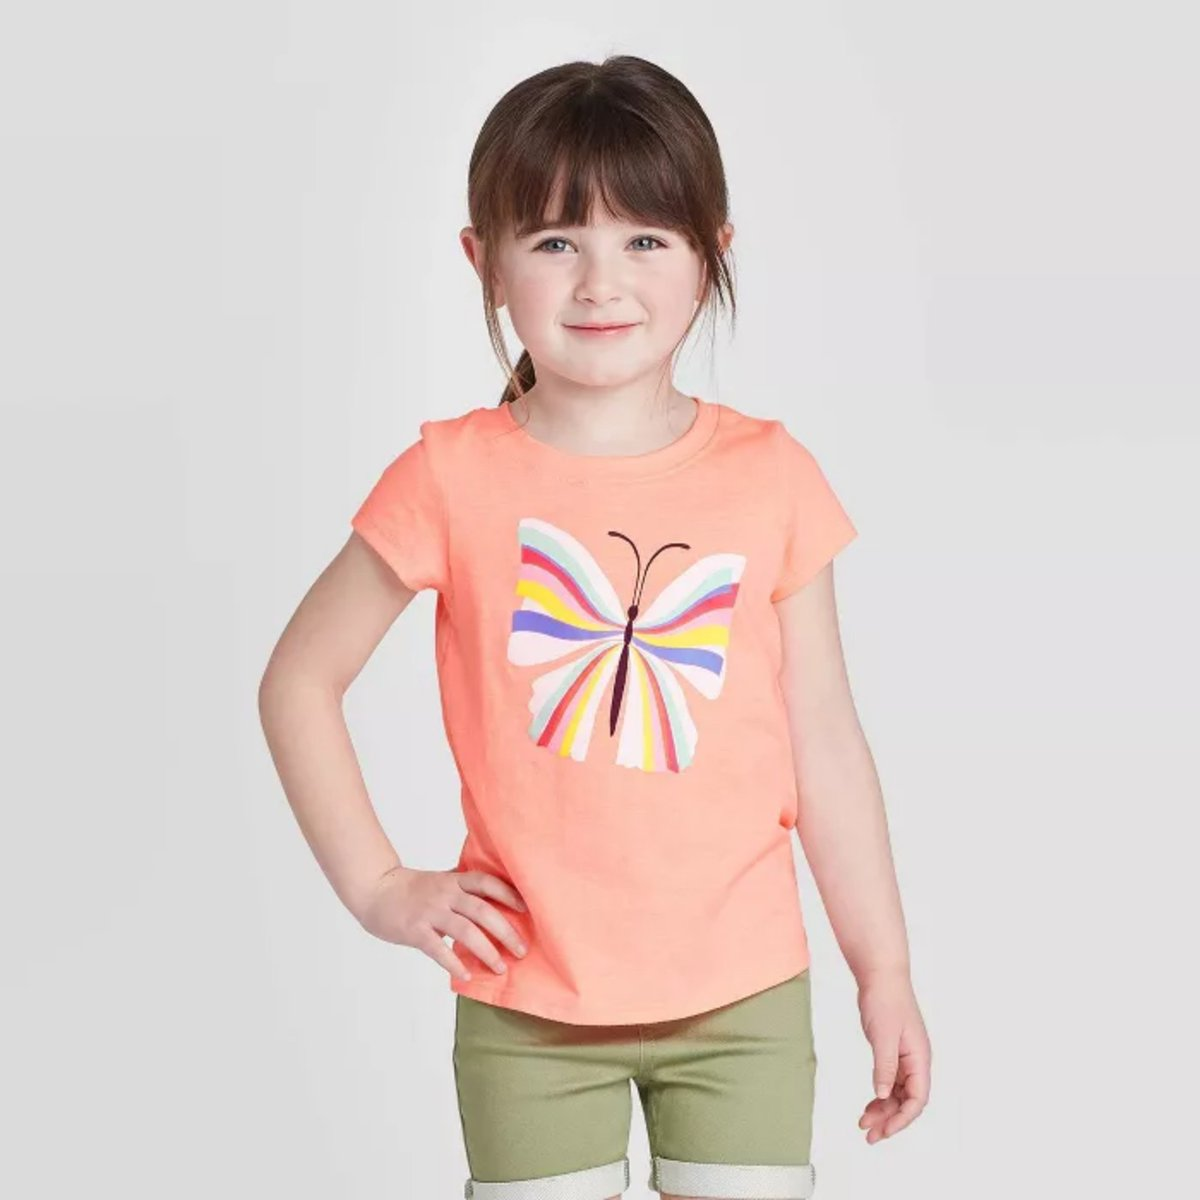 Whether she's learning a new word in preschool or painting at home, your favorite gal will be surrounded by vibrant colors when she's dressed in the Short-Sleeve Butterfly Graphic T-Shirt from Cat & Jack. #ad Shop here: https://t.co/v6QKHJuhqJ https://t.co/OS22CszCAL